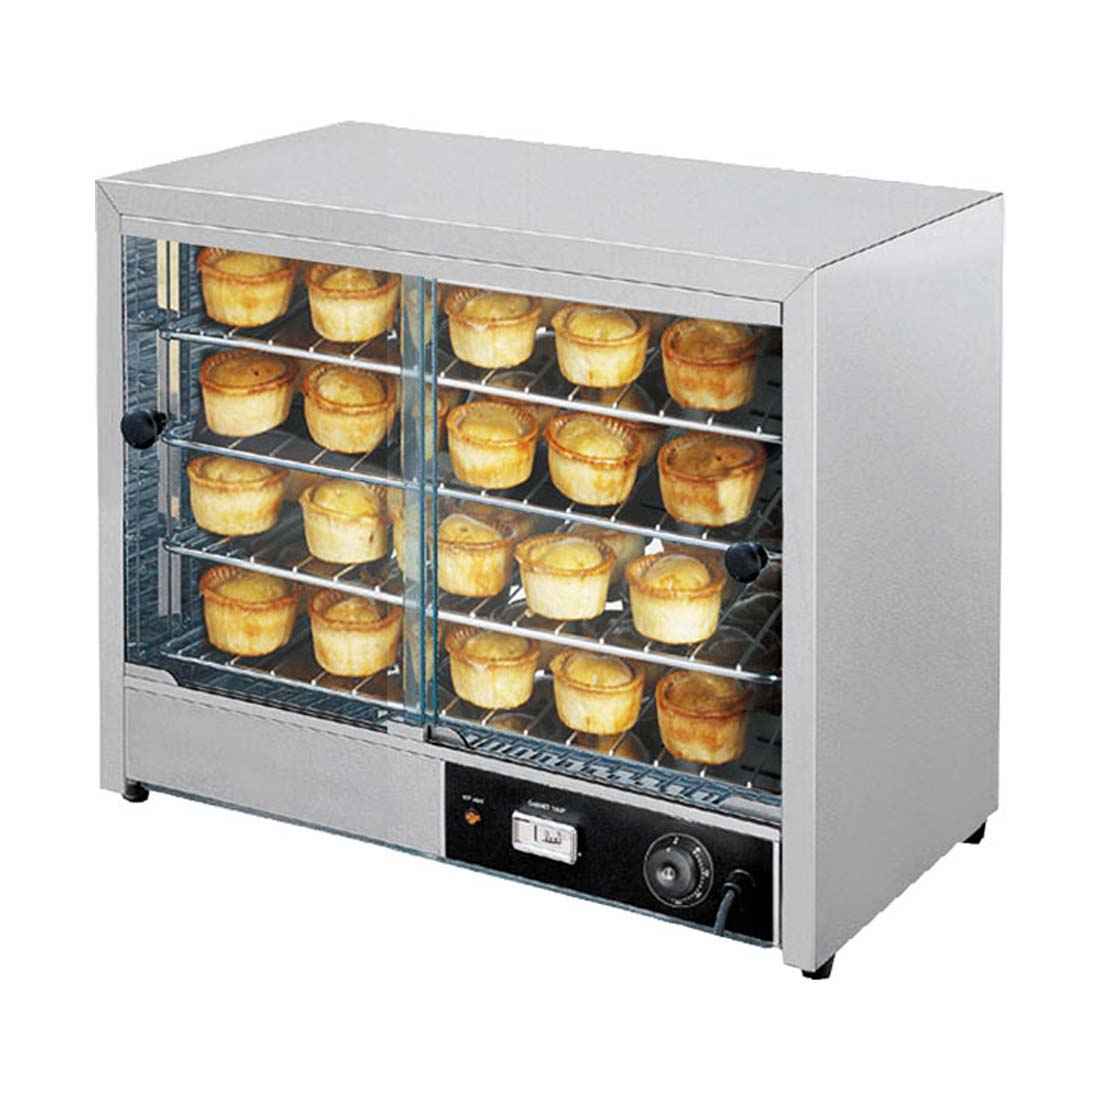 Pie Warmer & Hot Food Display - DH-580E